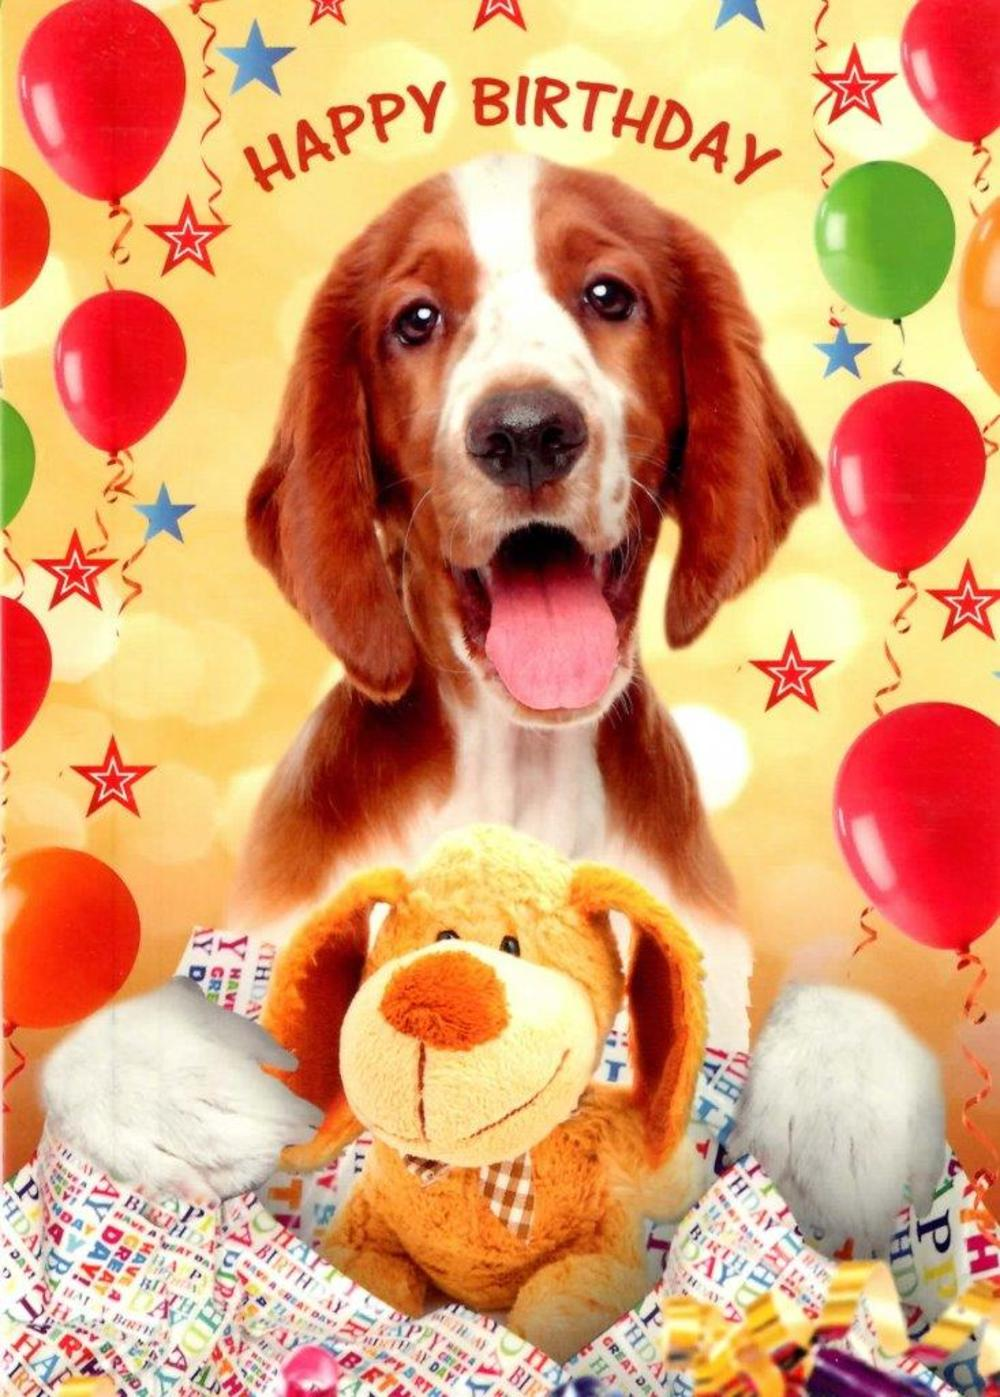 Cute dog happy birthday greeting card cards love kates cute dog happy birthday greeting card bookmarktalkfo Choice Image